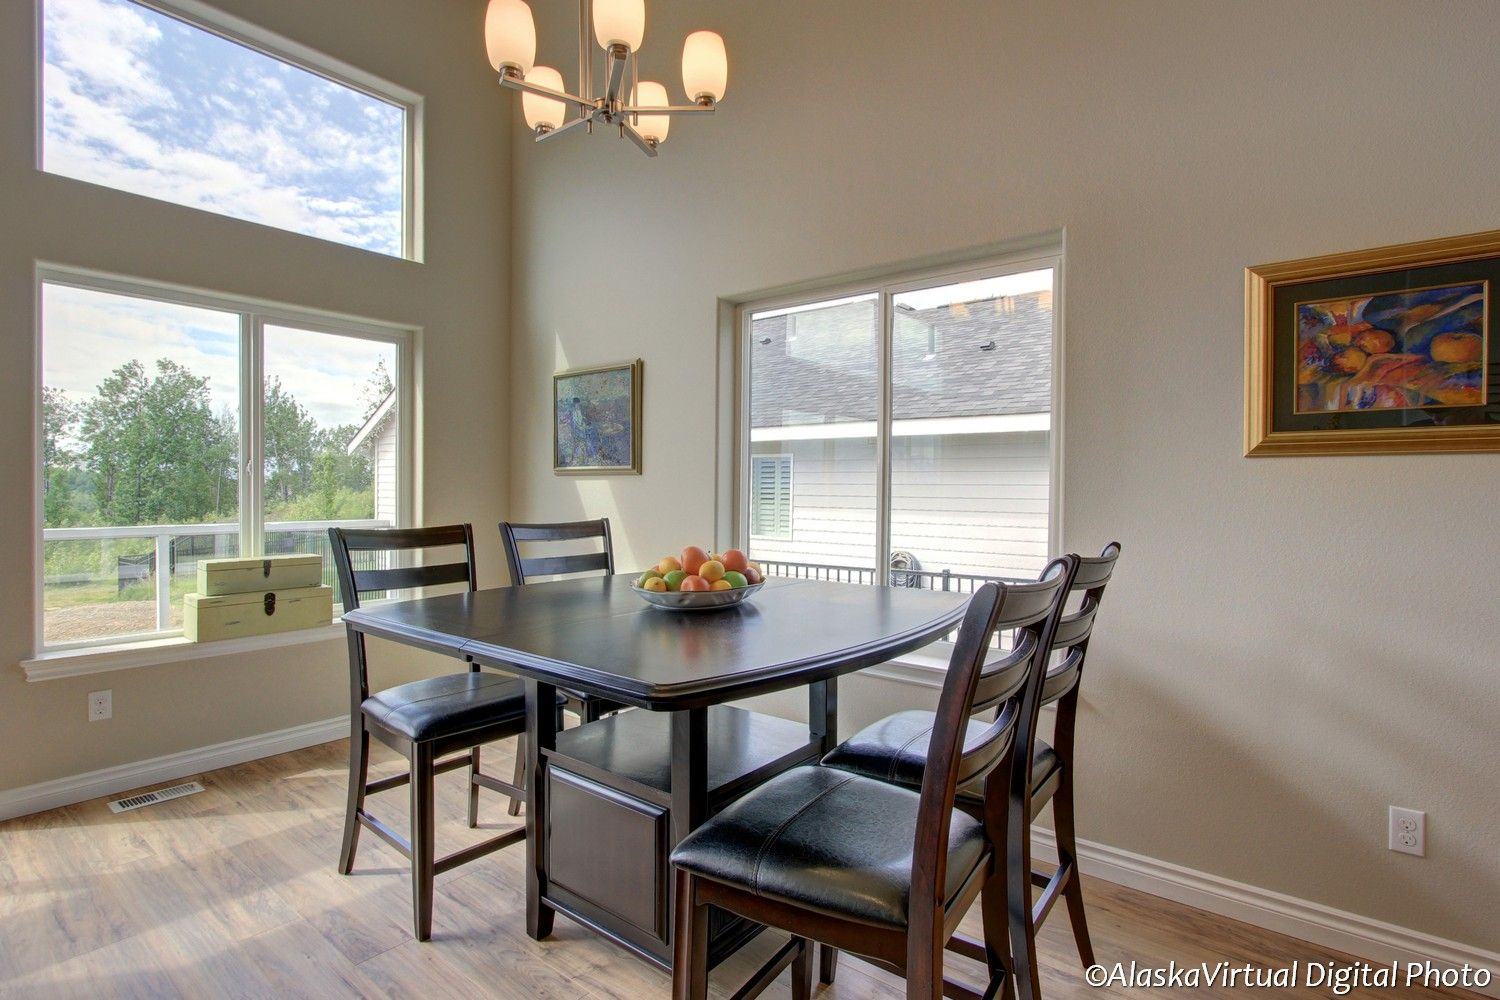 Kitchen featured in the Chugach 2338 By Spinell Homes in Anchorage, AK